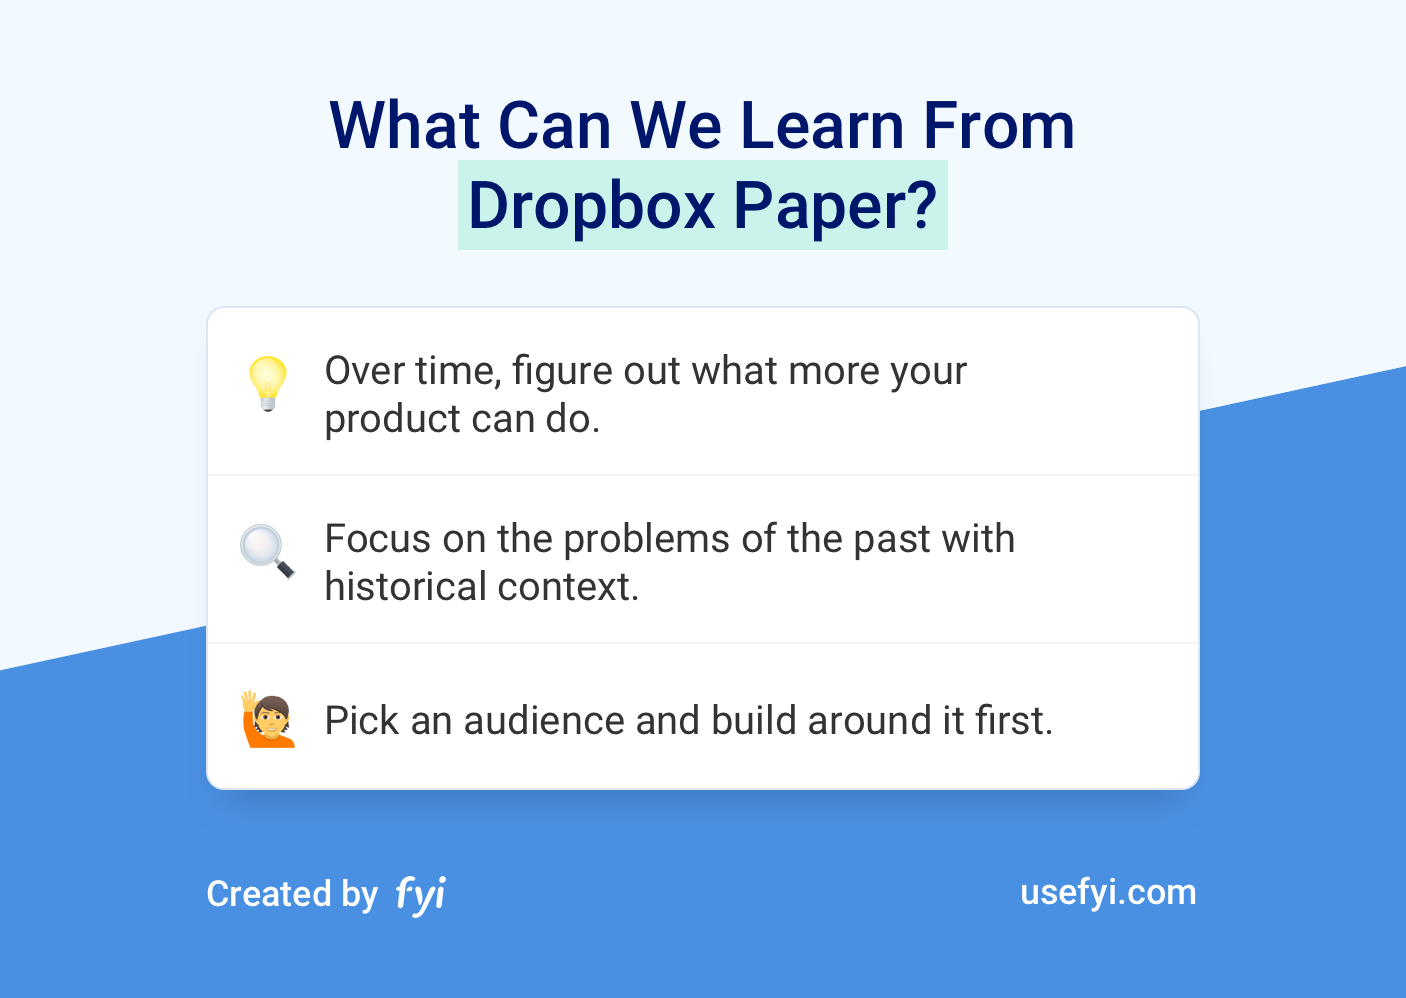 Dropbox Paper learnings